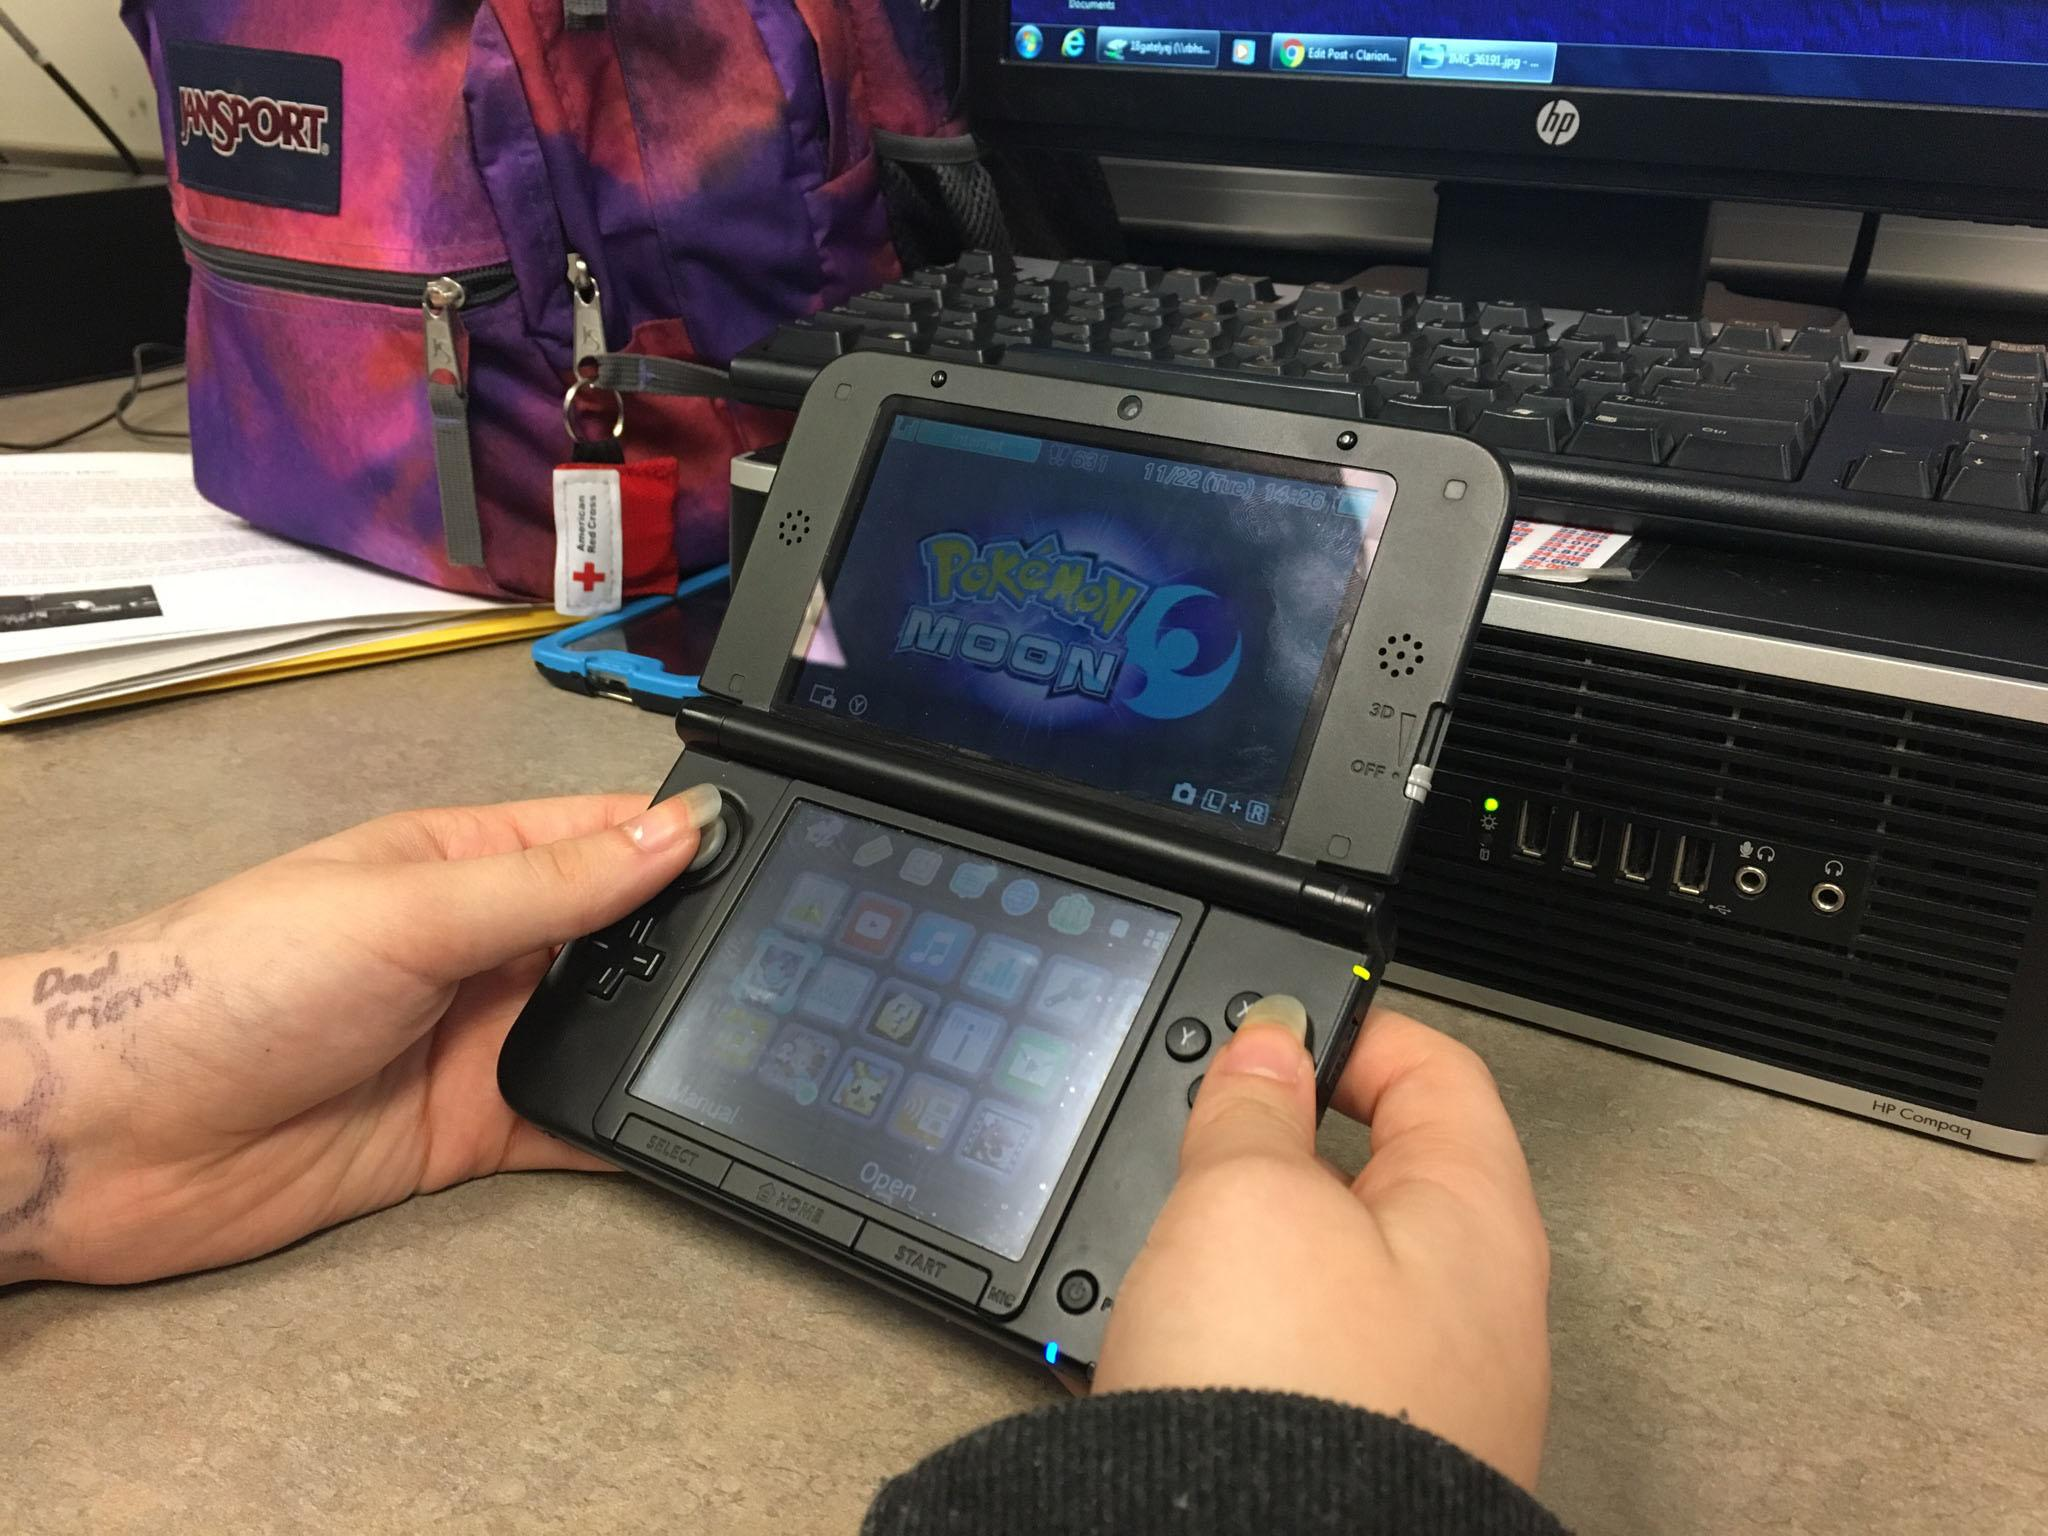 Pokemon Moon about to be played on a 3DS